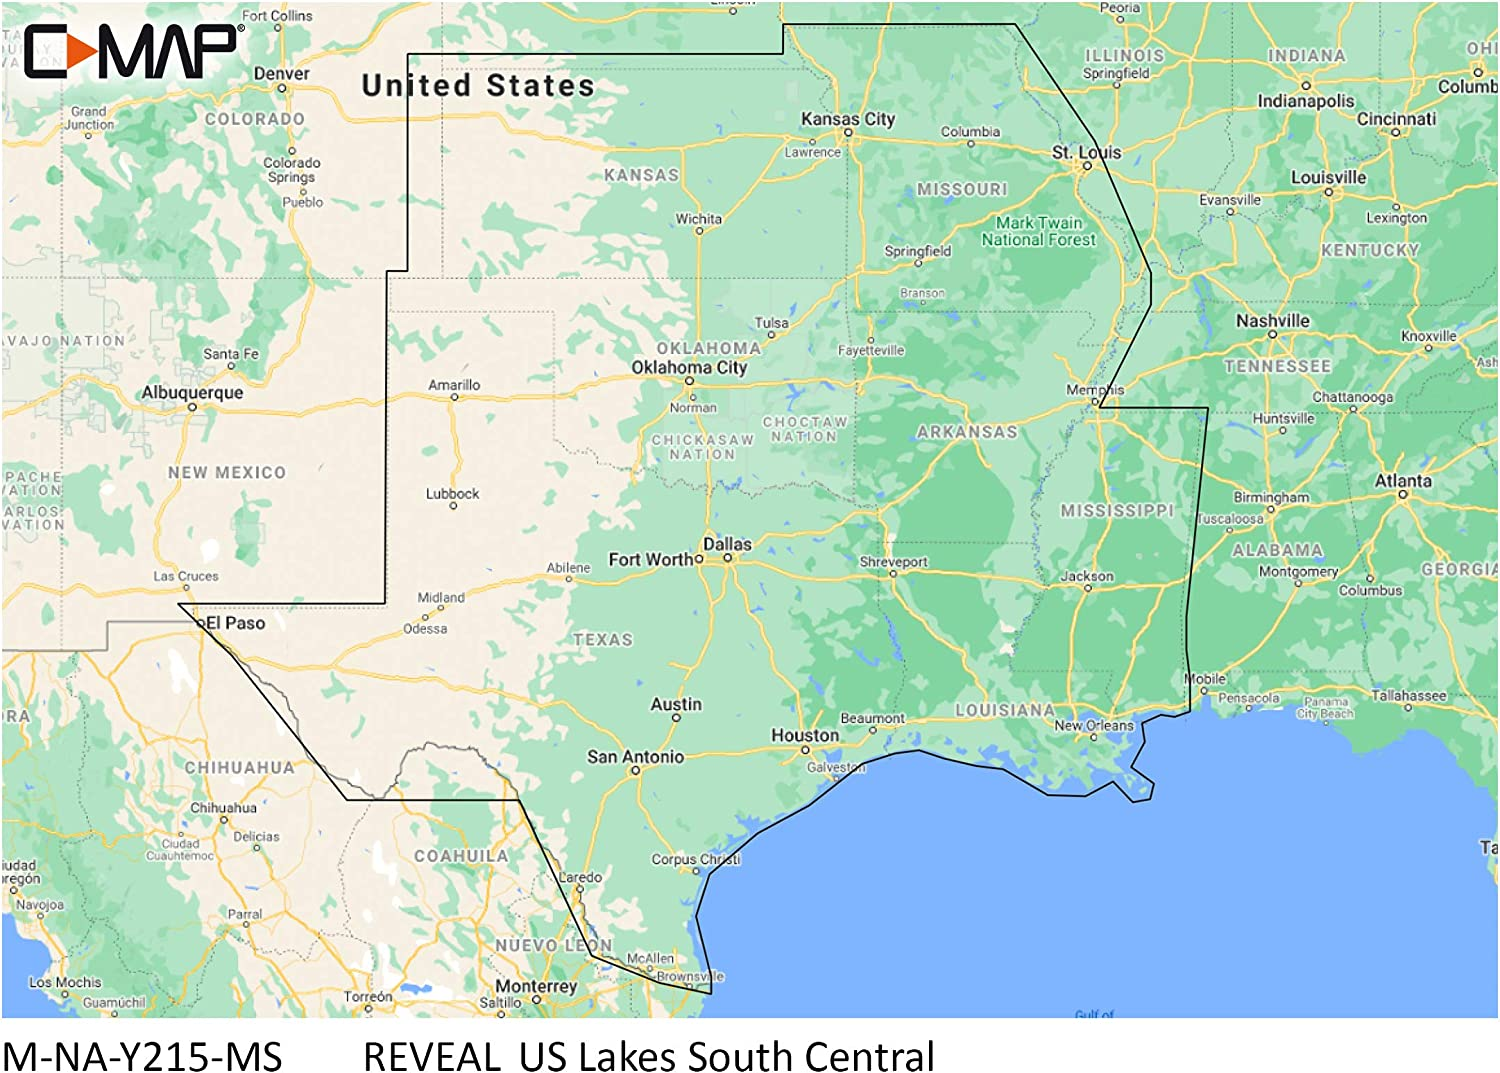 C-MAP Reveal Lakes - US Lakes South Central, Map Card for Marine GPS Navigation